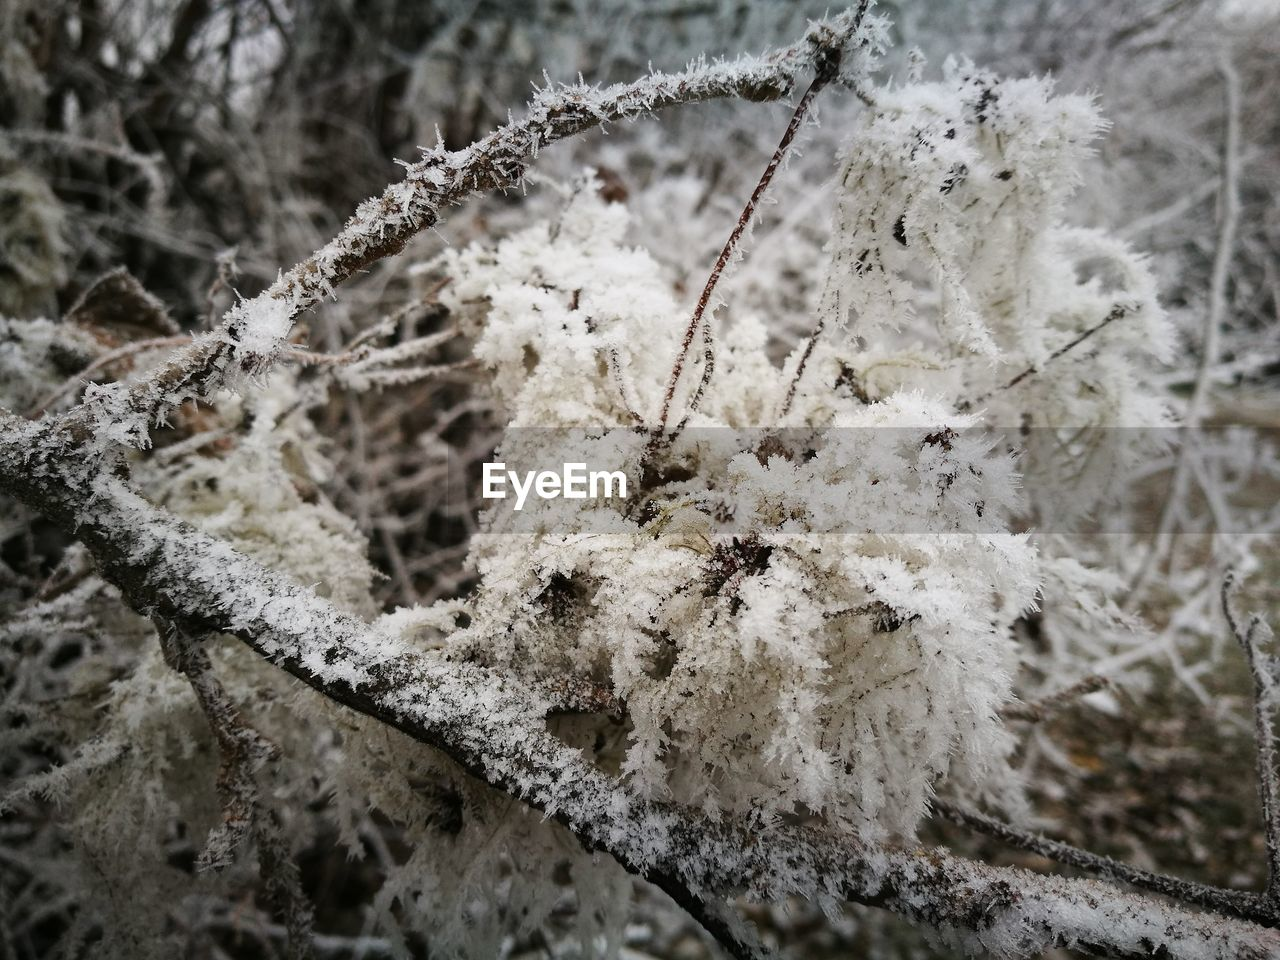 Close-Up Of Snow On Branch